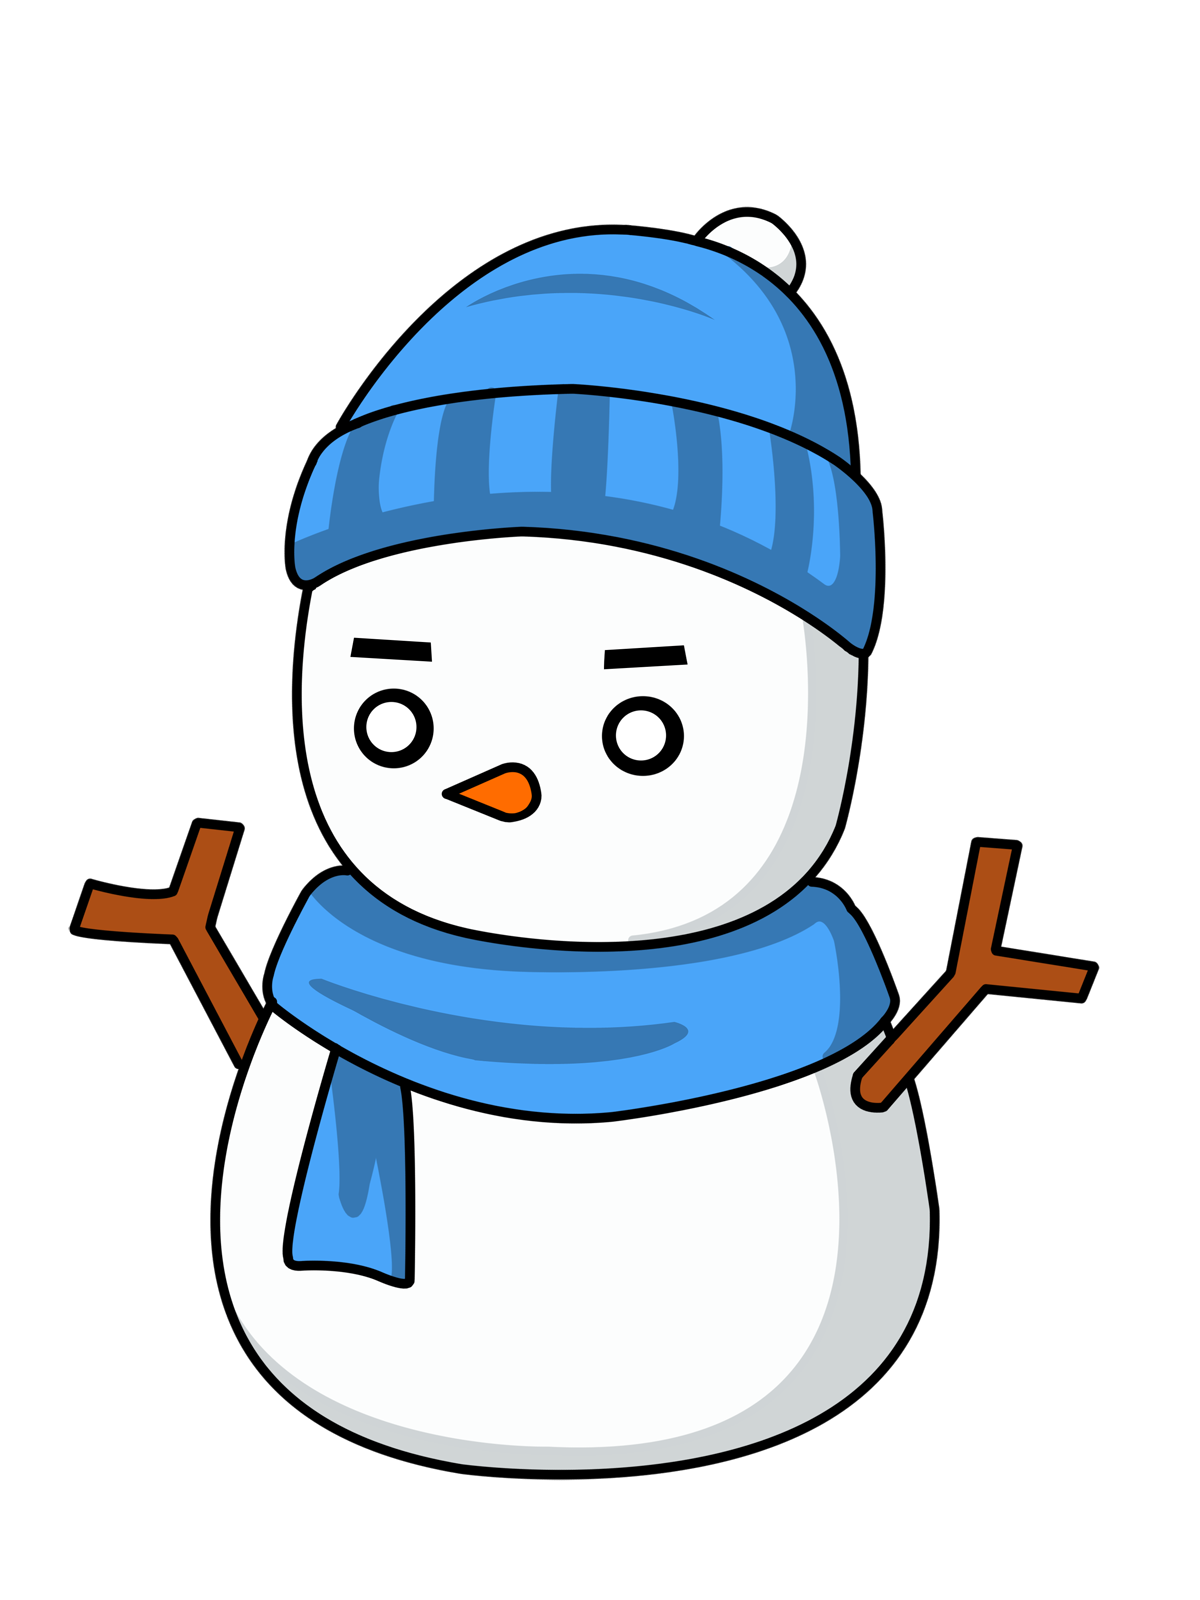 Free Snowman With Eskimo Style Hat Clip Art